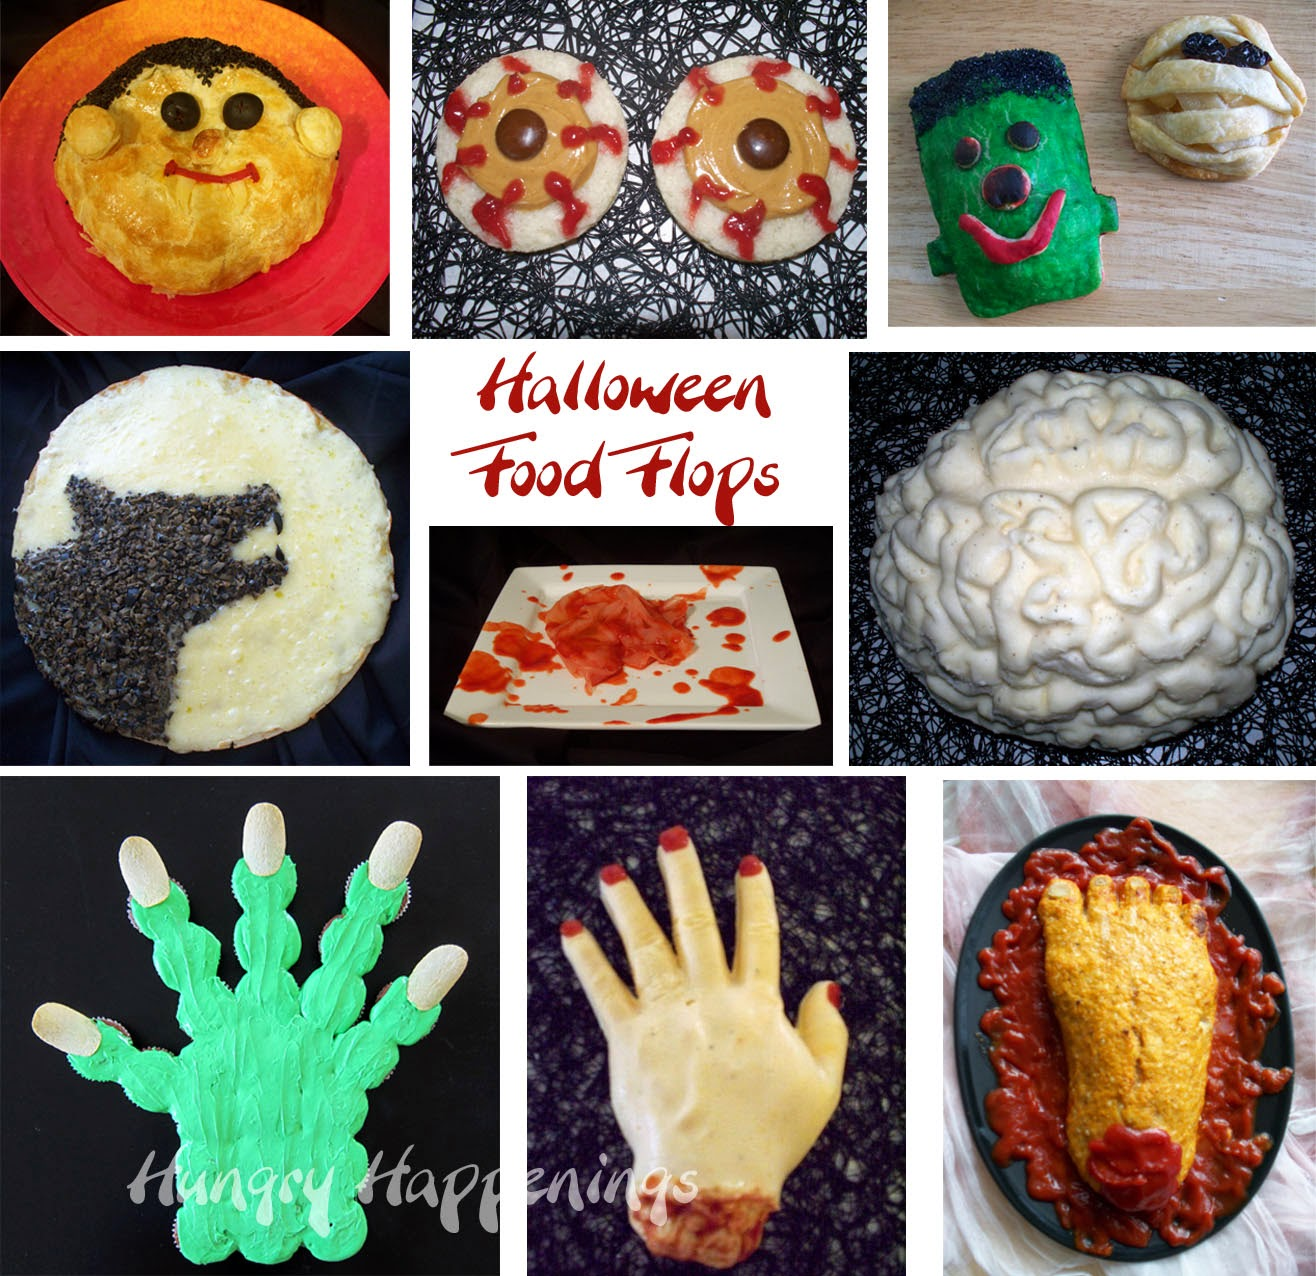 gross halloween food and recipes | hungry happenings